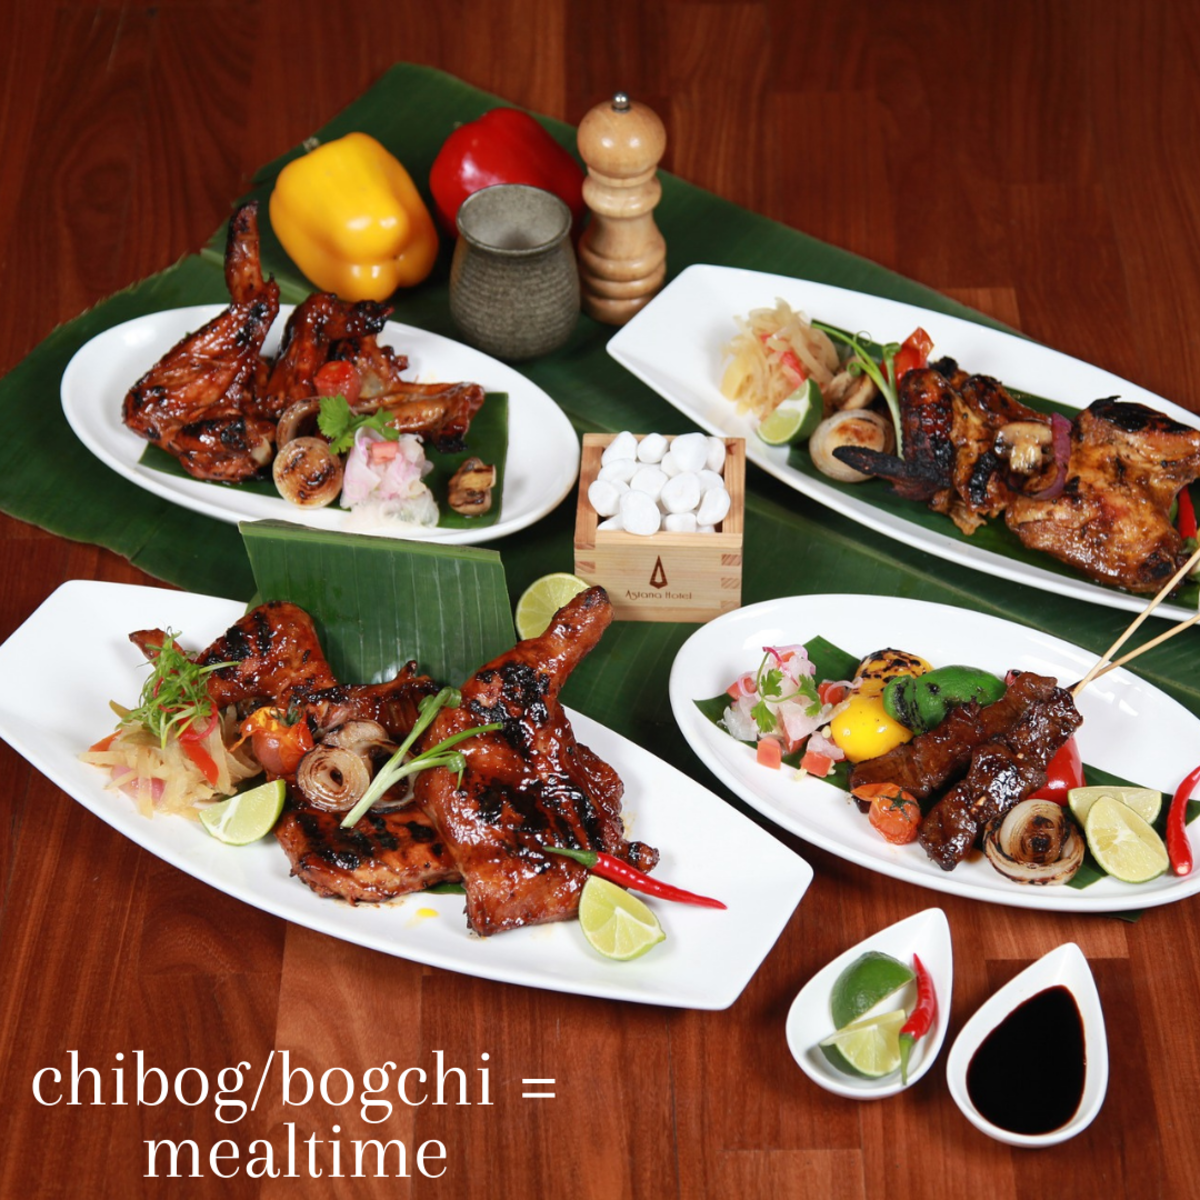 """If you're feeling hungry and wondering when your next meal might be, you're likely waiting for """"chibog"""" or """"bogchi,"""" which translates to """"mealtime."""""""